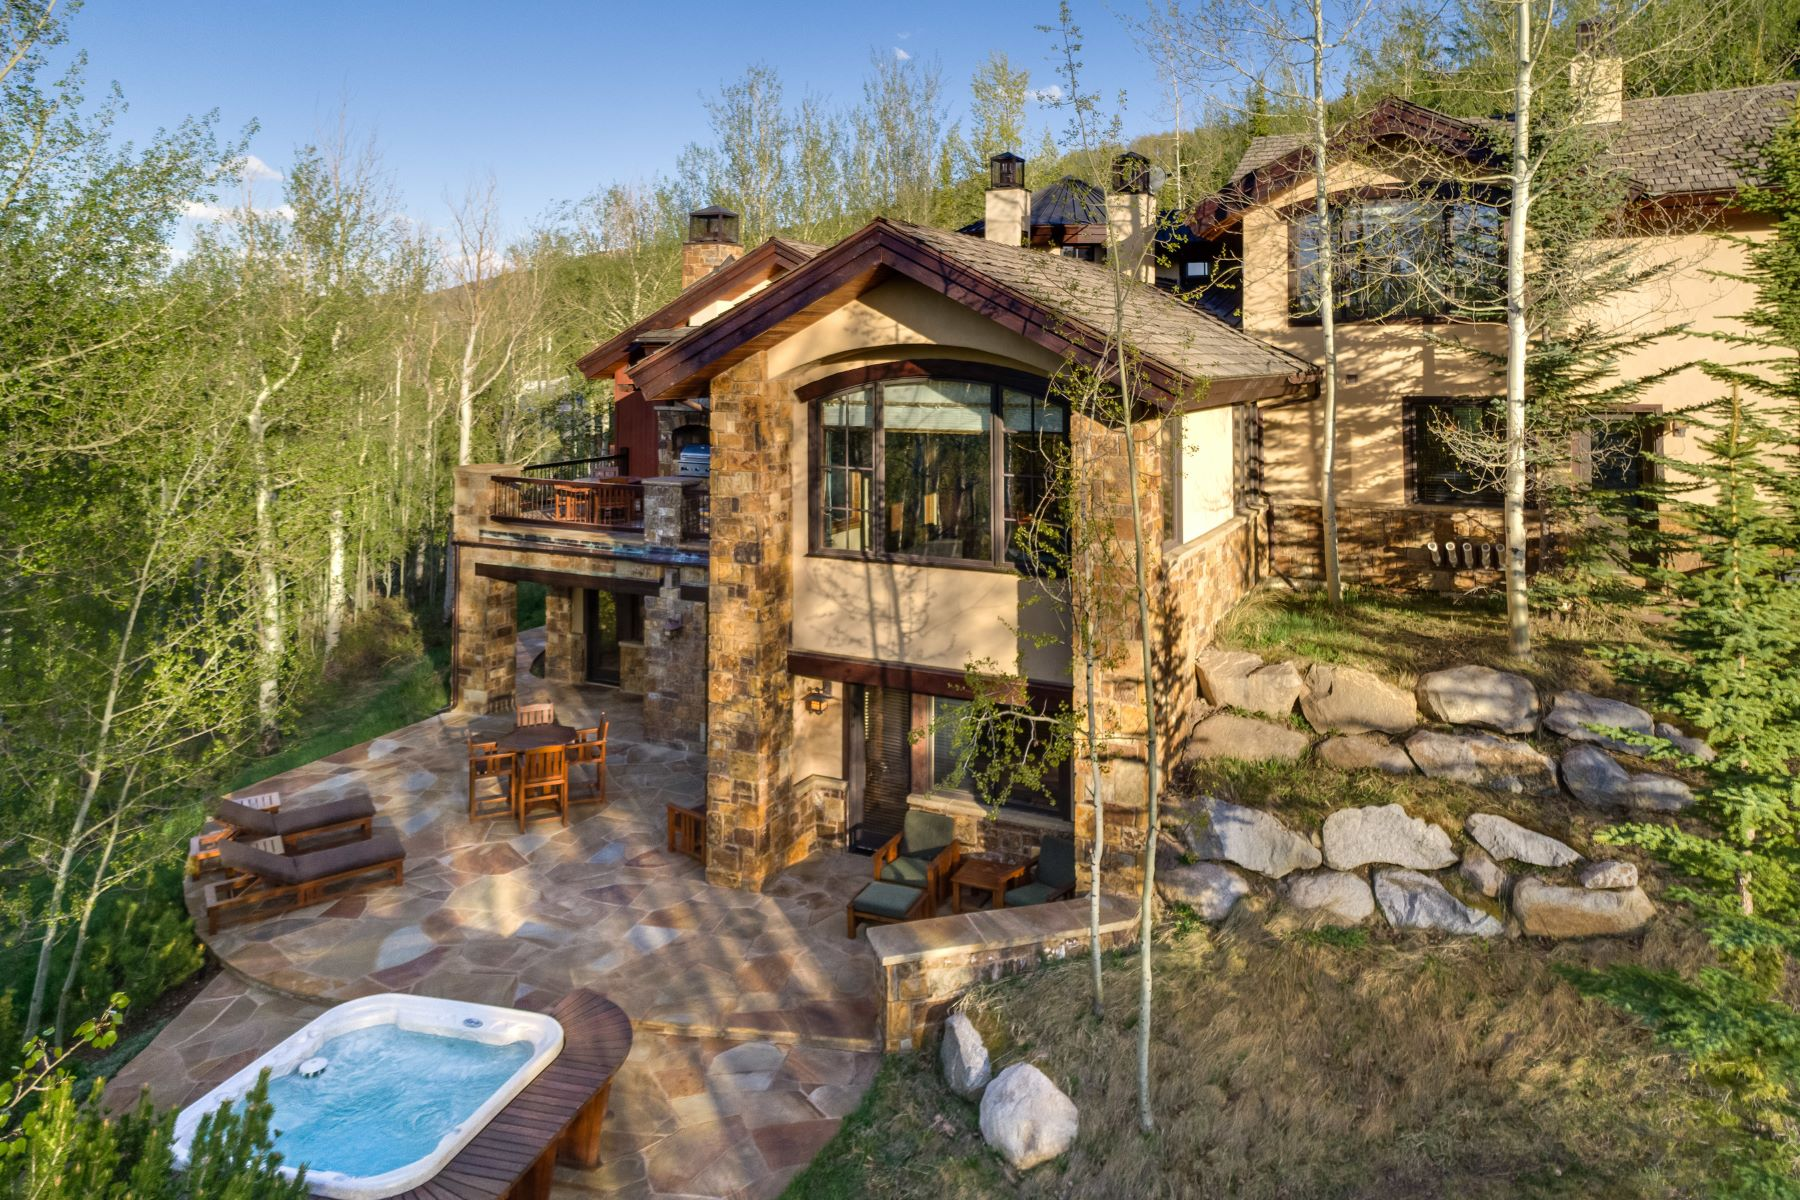 Single Family Homes for Sale at Lush Alpine Setting in The Divide 56 Aspen Way Snowmass Village, Colorado 81615 United States